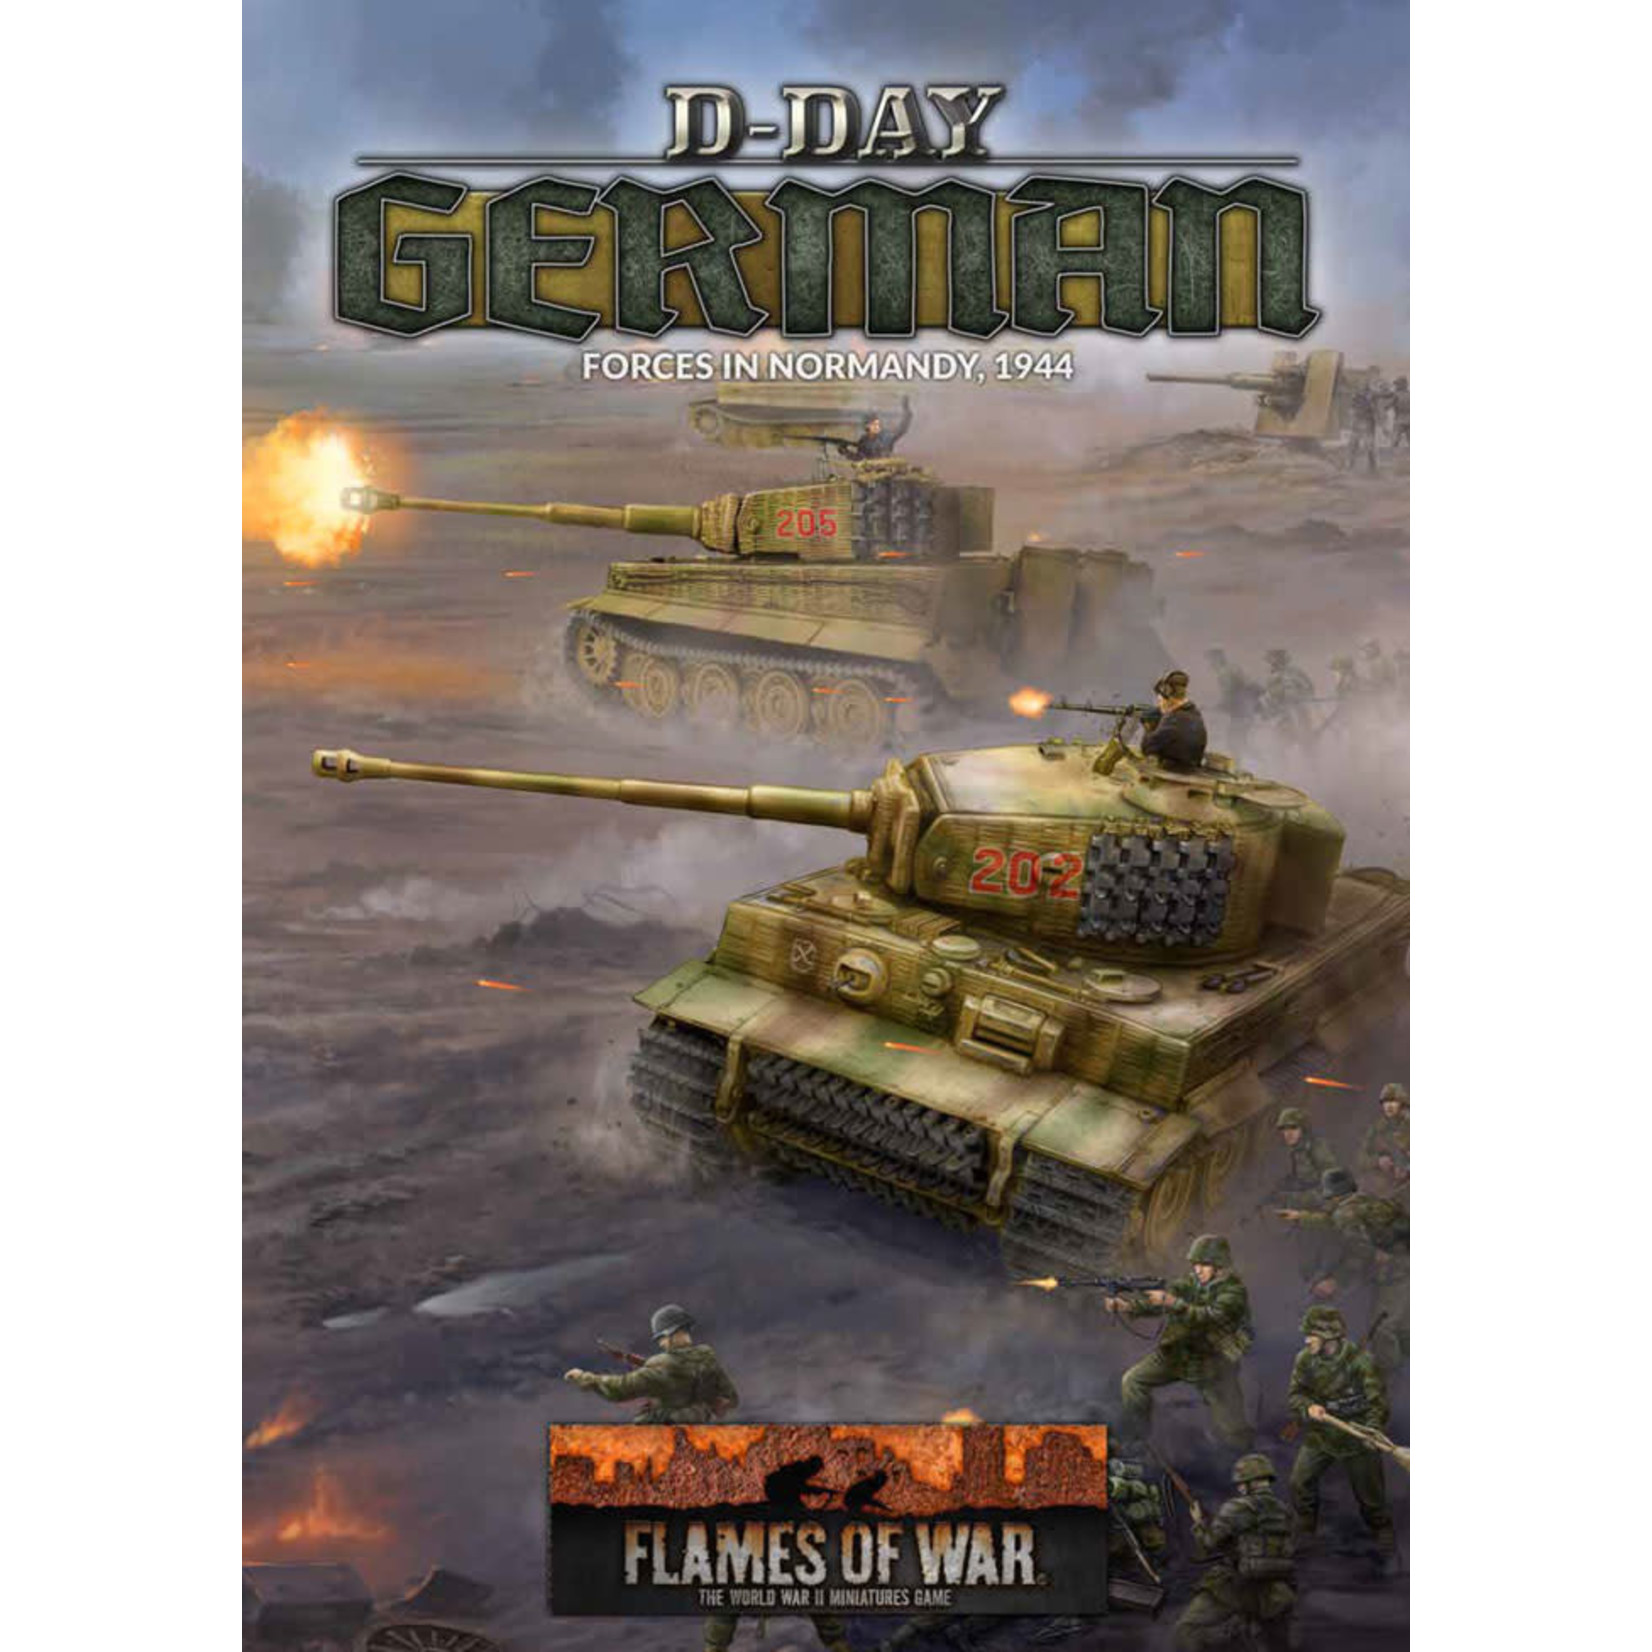 Battlefront Miniatures Ltd D-Day: Germans